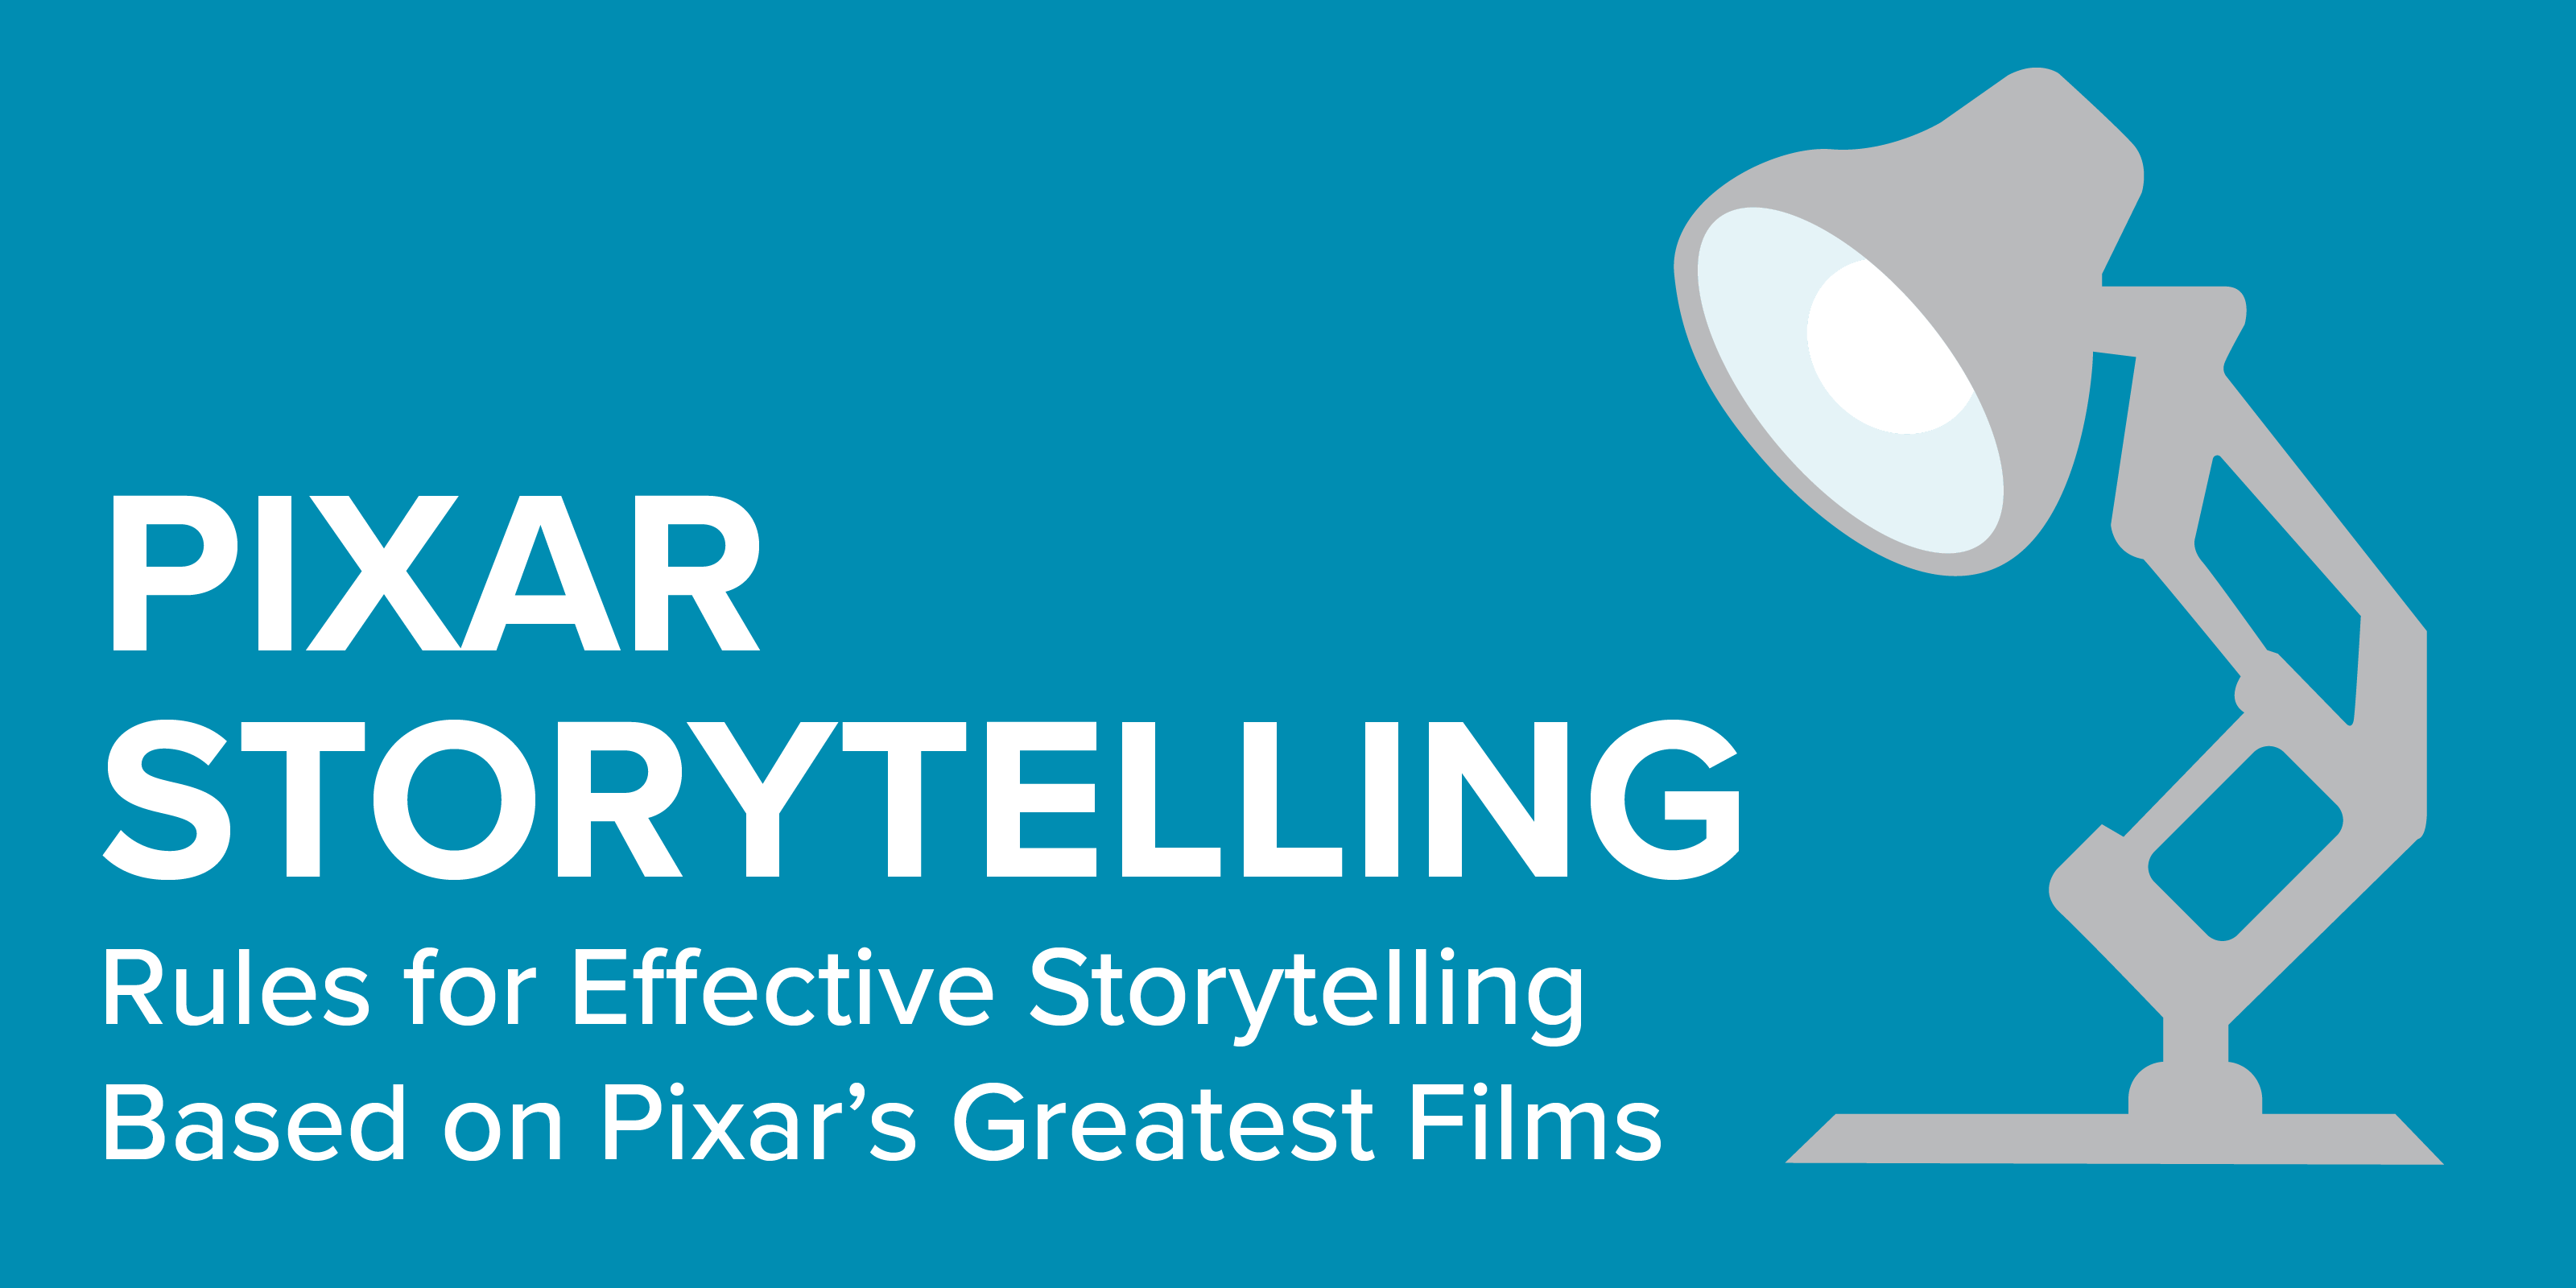 Rules for Effective Storytelling Based on Pixar's Greatest Films